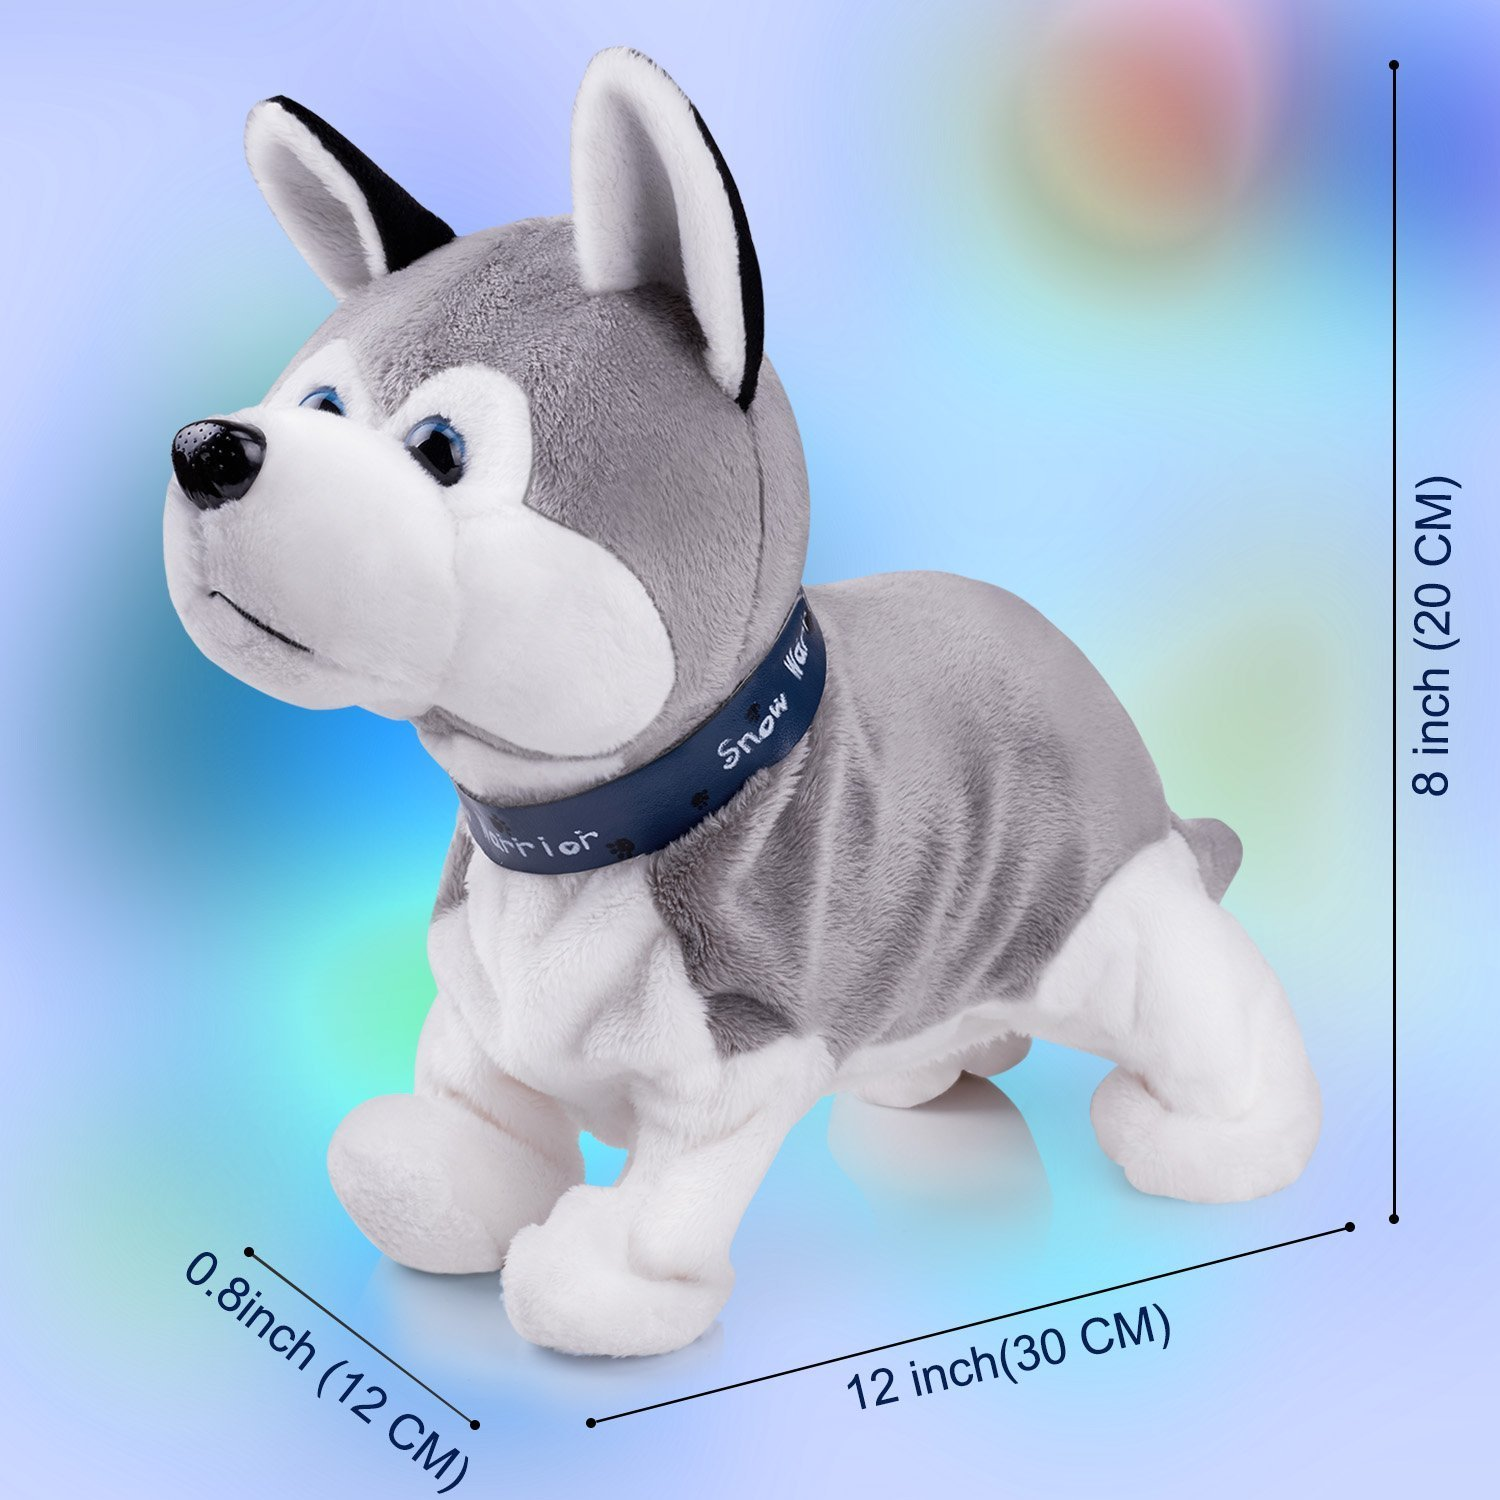 Interactive Puppy Plush Animated Pet Electronic Dog Cute Robot Dog Baby Toys Touch Control Plush Husky Stuffed Animal Dog Toy Toddler kids Girl Toys Tumbling, Clapping hands, Bowing Length 12'' by Marsjoy (Image #4)